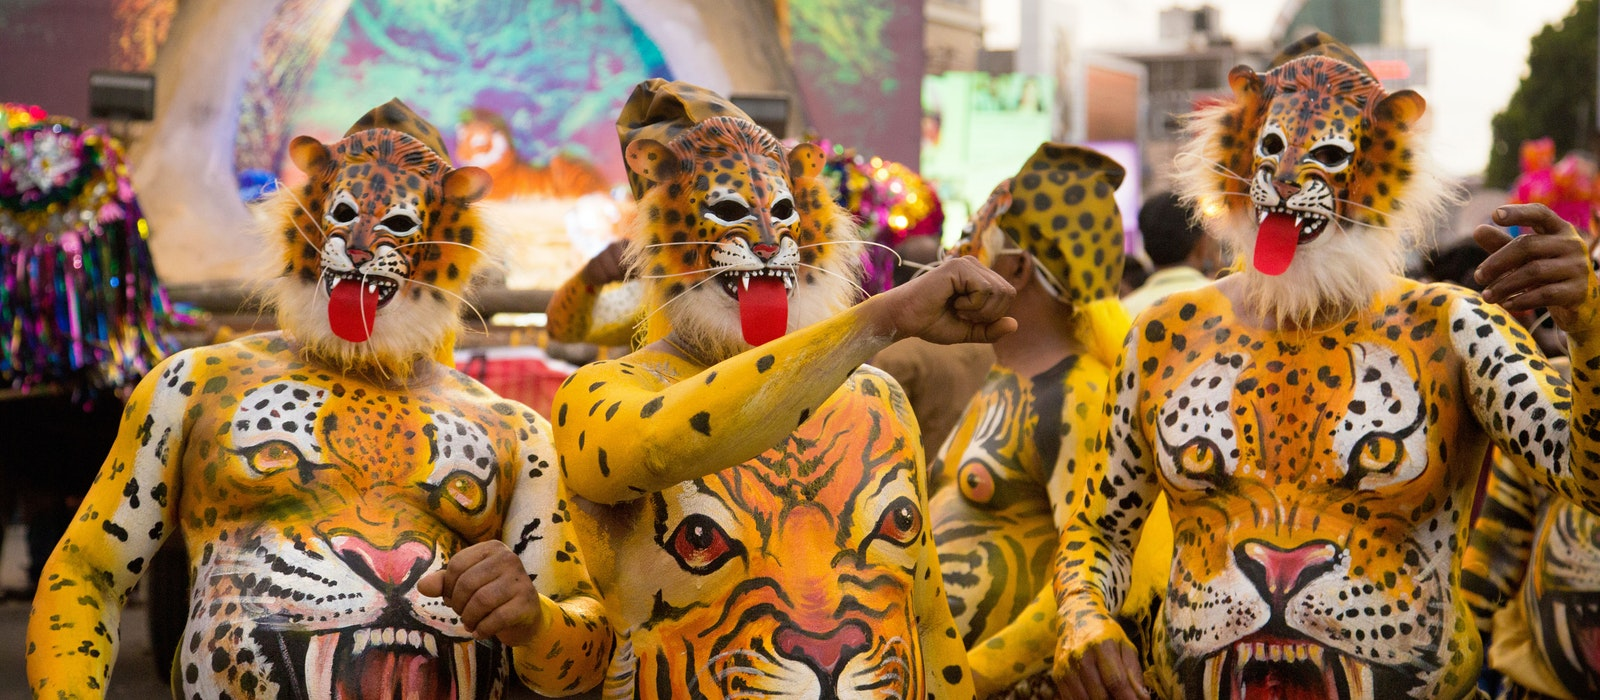 For the first time in its 200-year history, women joined the tiger festival in Thrissur, in Kerala state.